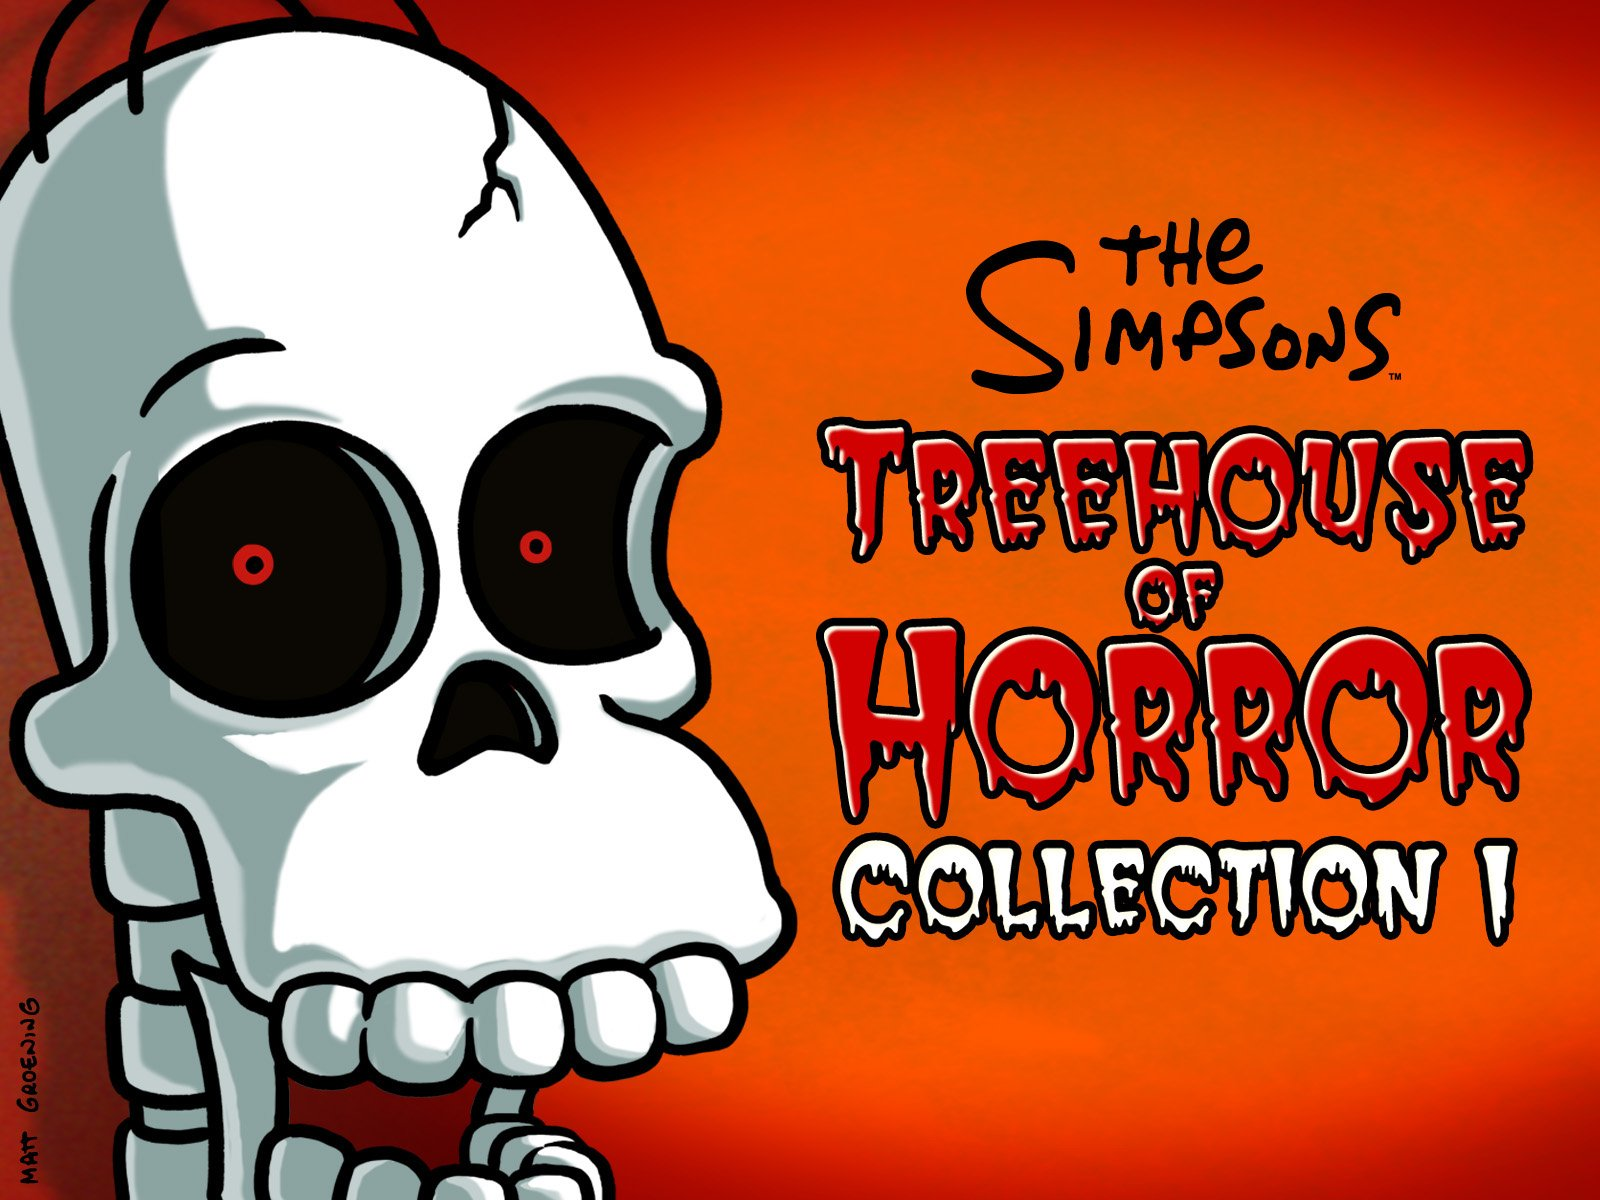 Treehouse Of Horror Episodes Online Part - 39: Amazon.com: The Simpsons: Treehouse Of Horror Season 1: Amazon Digital  Services LLC